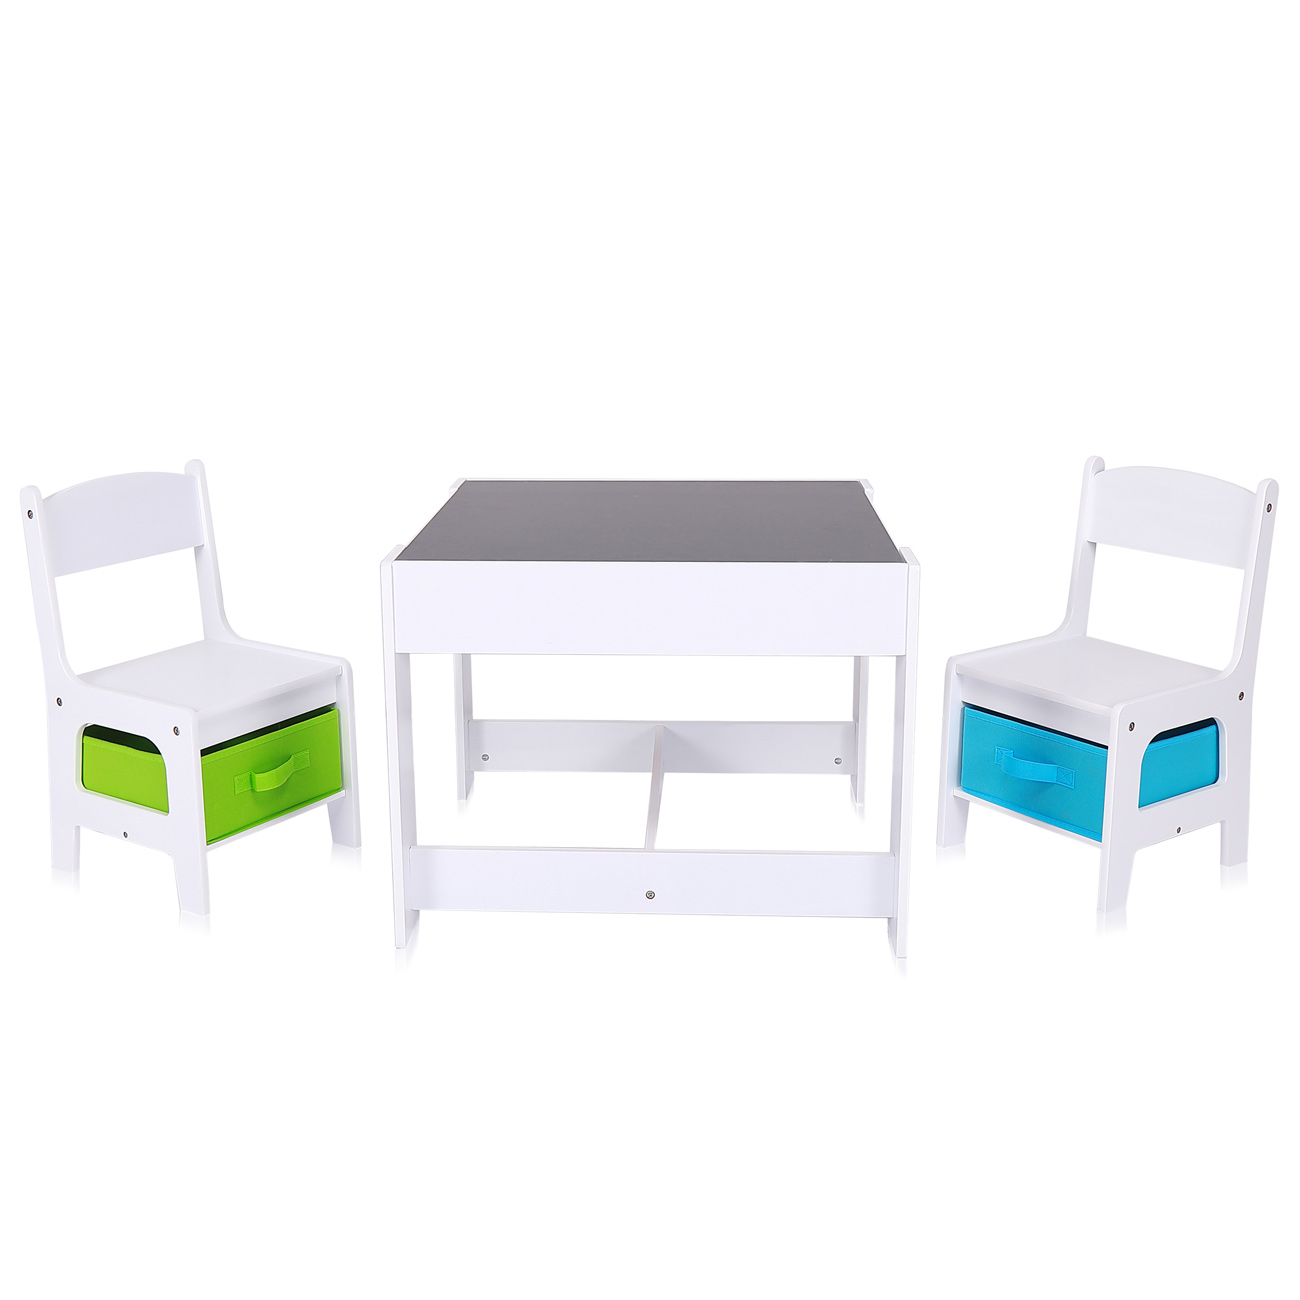 Superb Baby Vivo Set Childrens Activity Table With 2 Chairs Made Of Wood Max Ma Trading Eu Cheap Prices For Baby Child Office Diy Garden Sports Dailytribune Chair Design For Home Dailytribuneorg